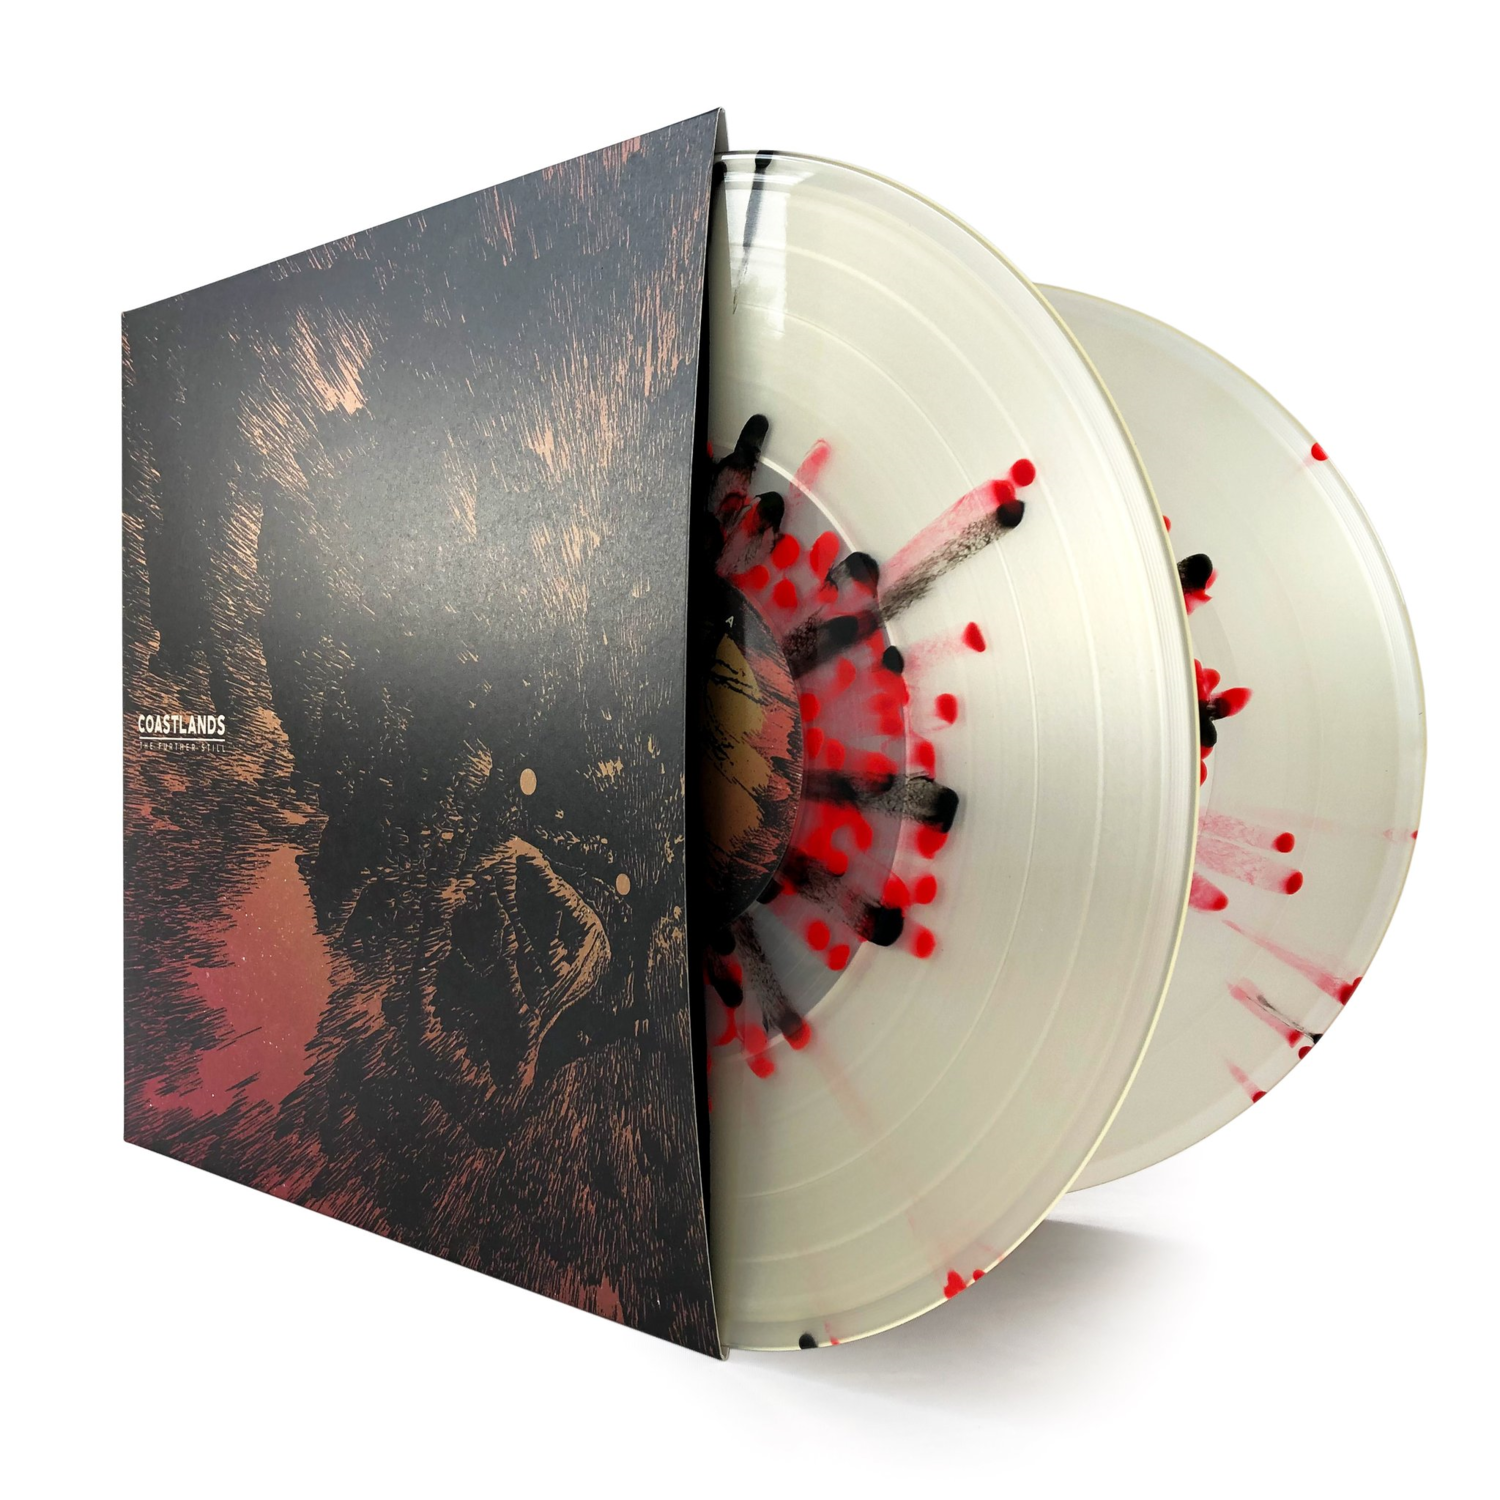 Coastlands • The Further Still - Released on Nov 2nd, 2018. 1st pressing Yellow w/ Black Smoke. Sold Out.2nd pressing Milky Clear w/ Red/Black splatter. Limited to 250 copies.